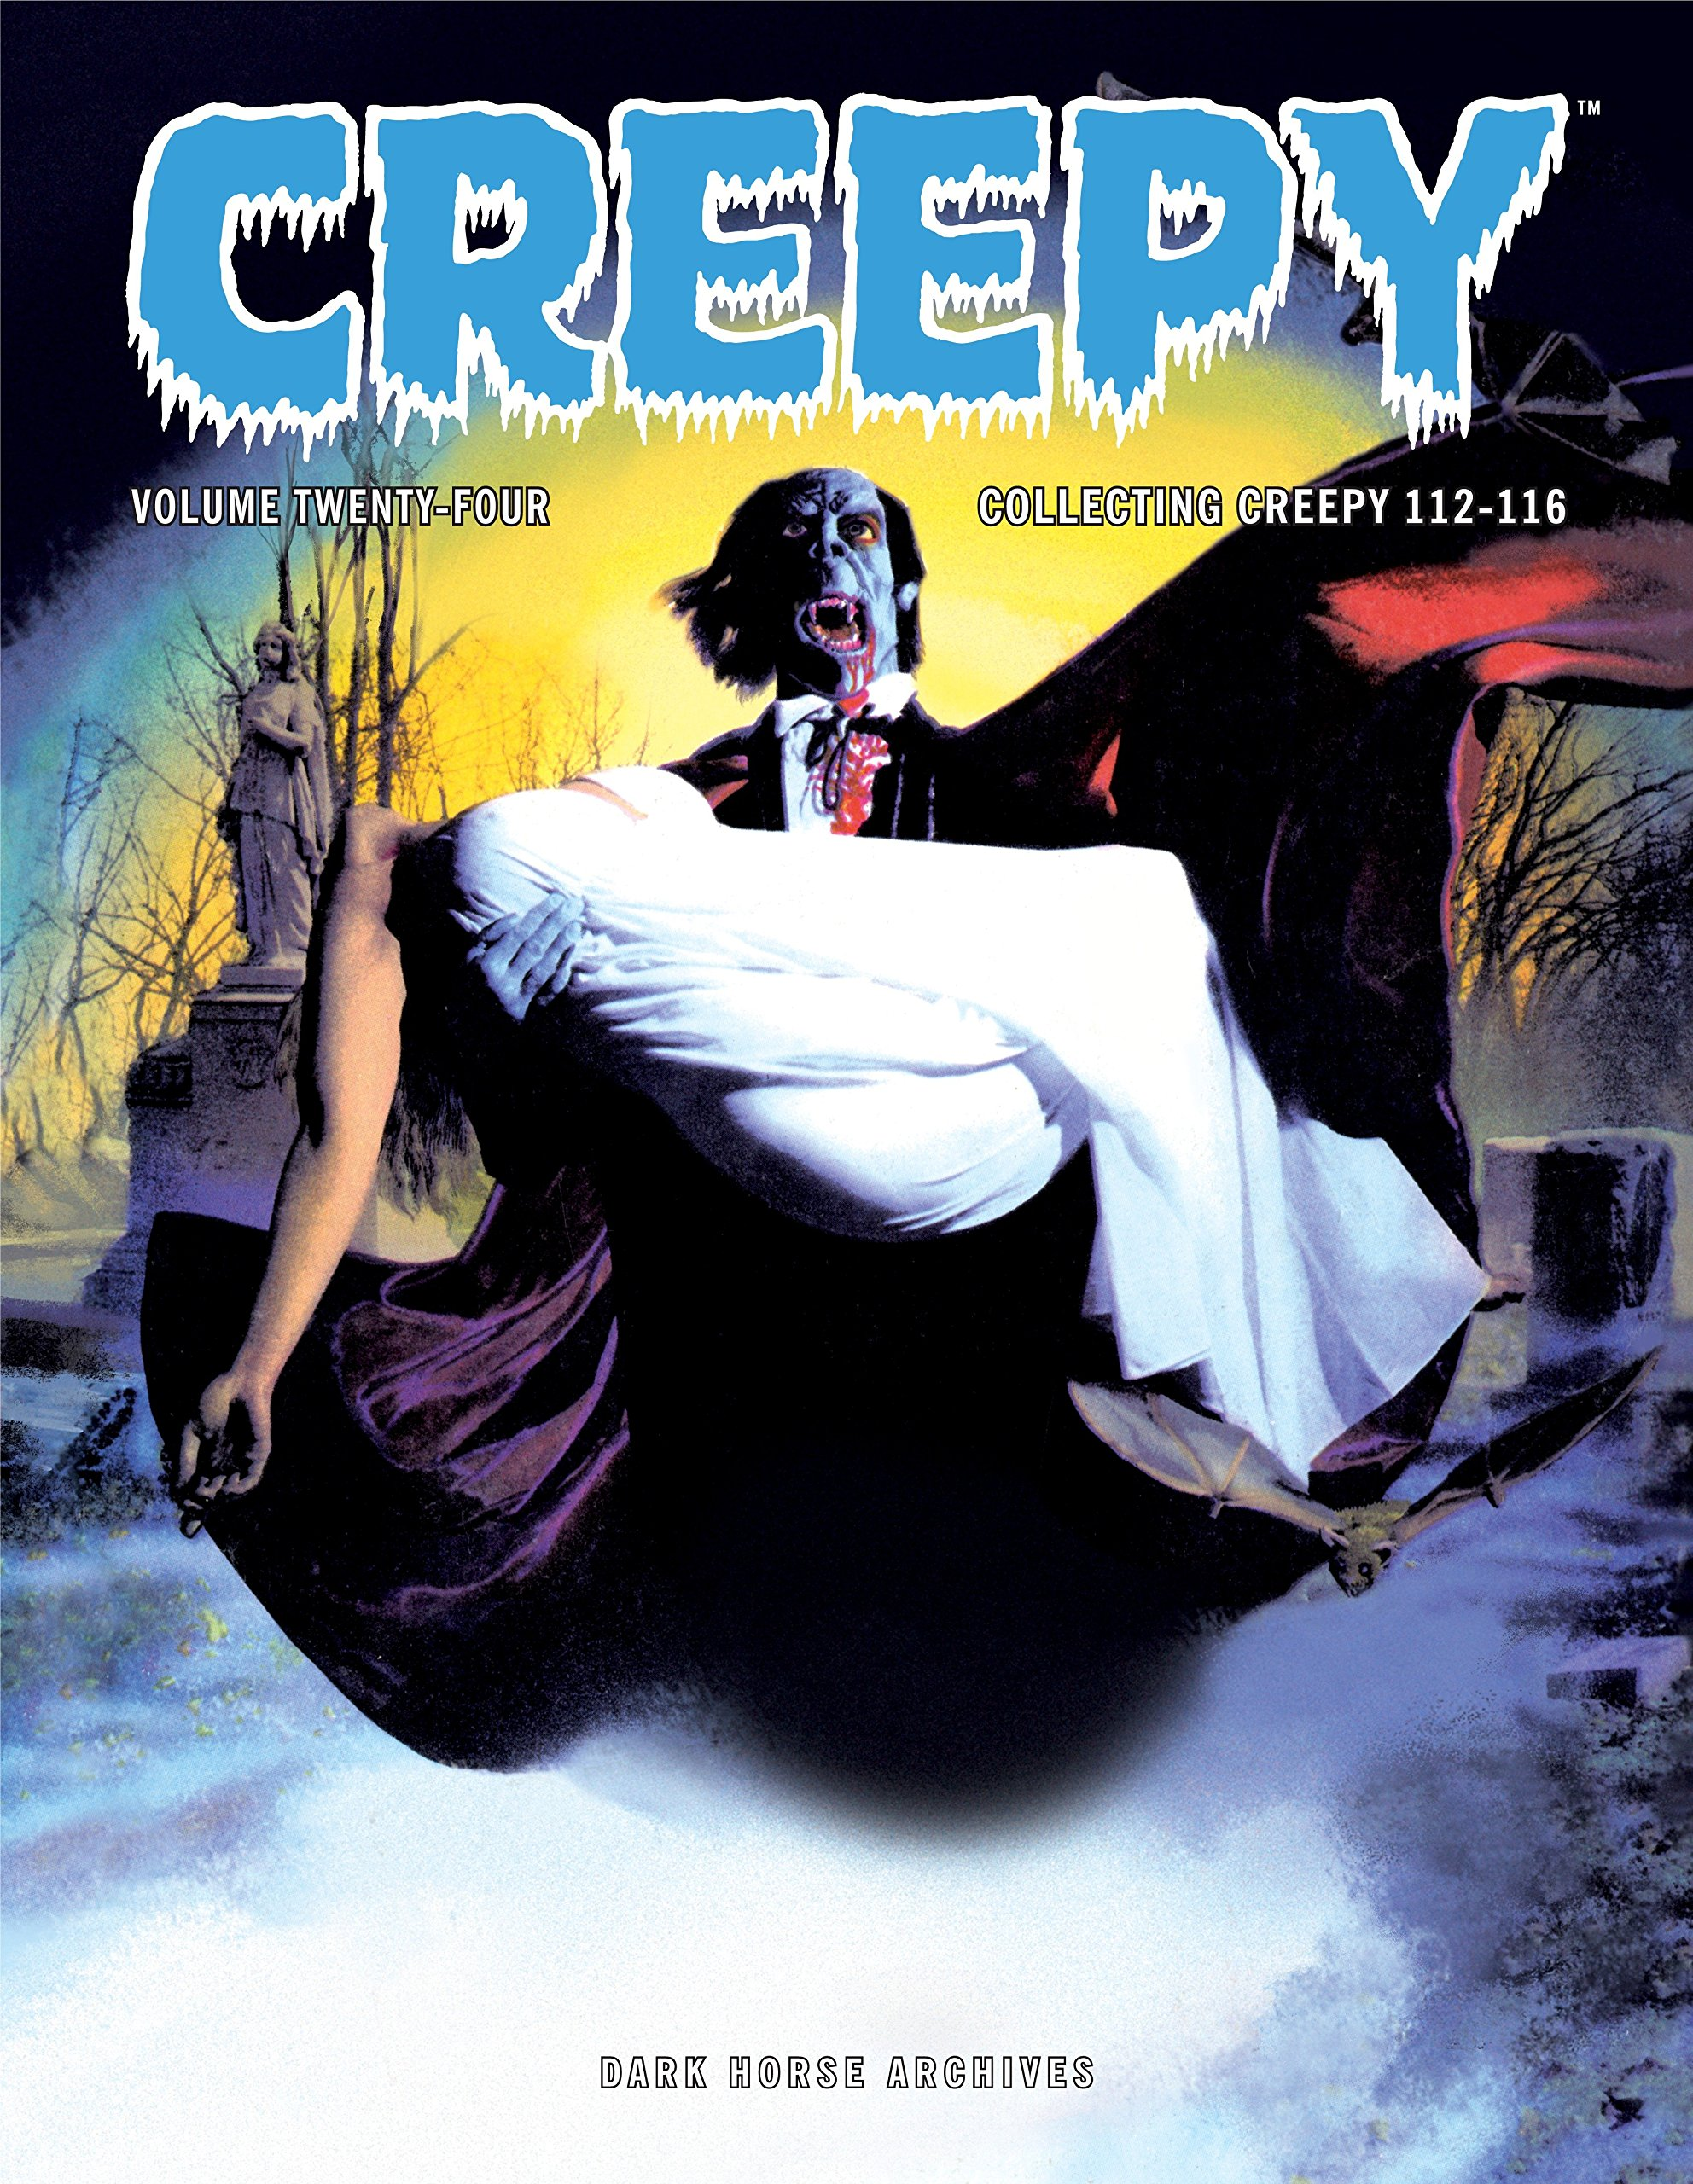 Download Creepy Archives Volume 24: Collecting Creepy 112-116 pdf epub